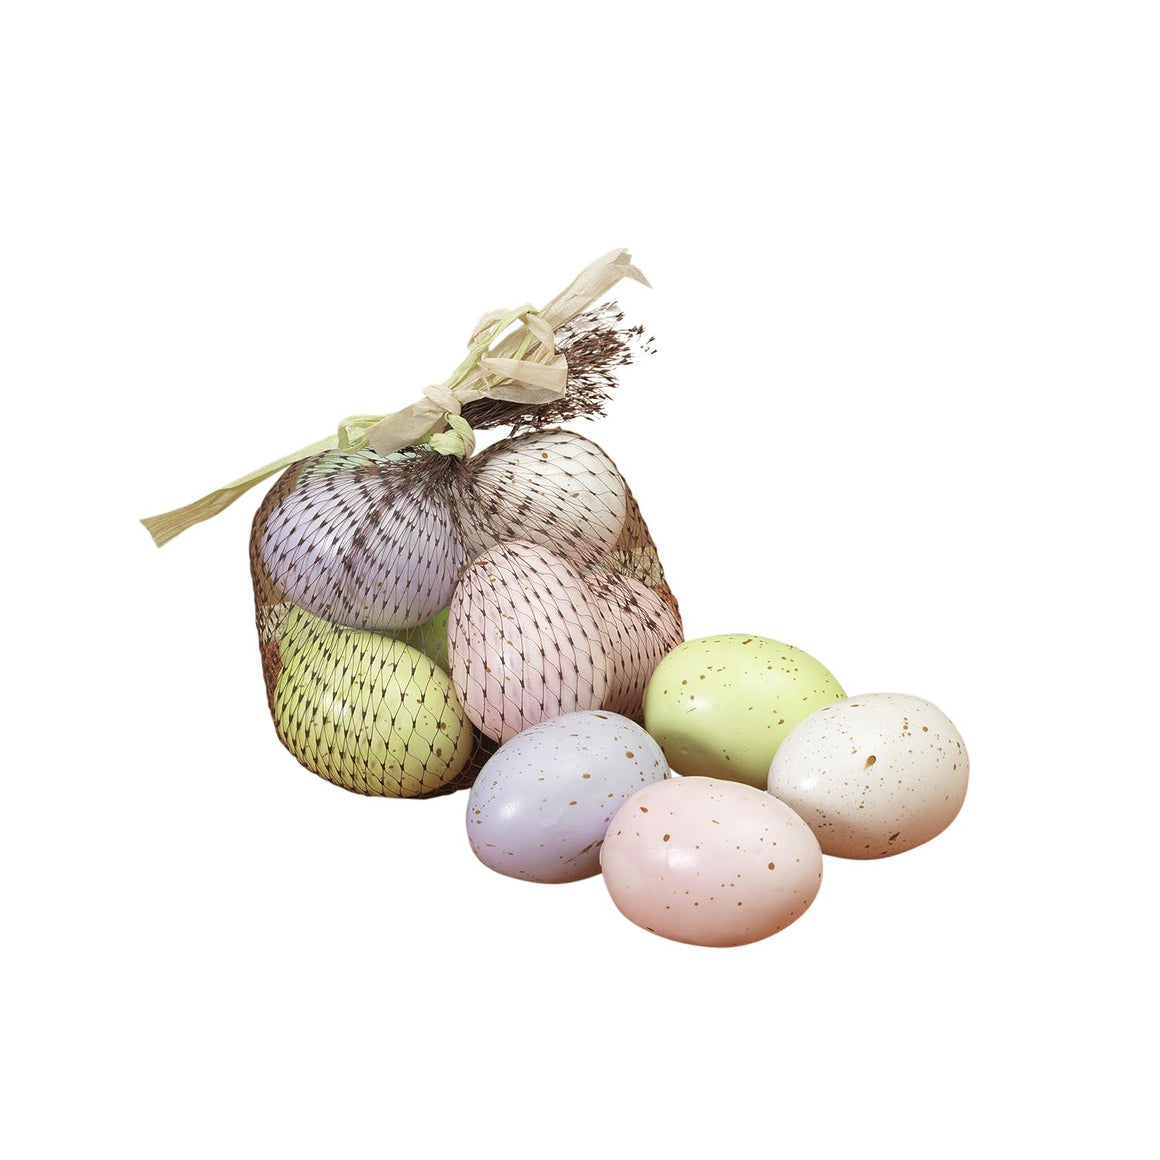 12 Artificial Speckled Easter Eggs in Pastel Colors - 2 Inch Eggs in Lavender, Blue, Green, Pink